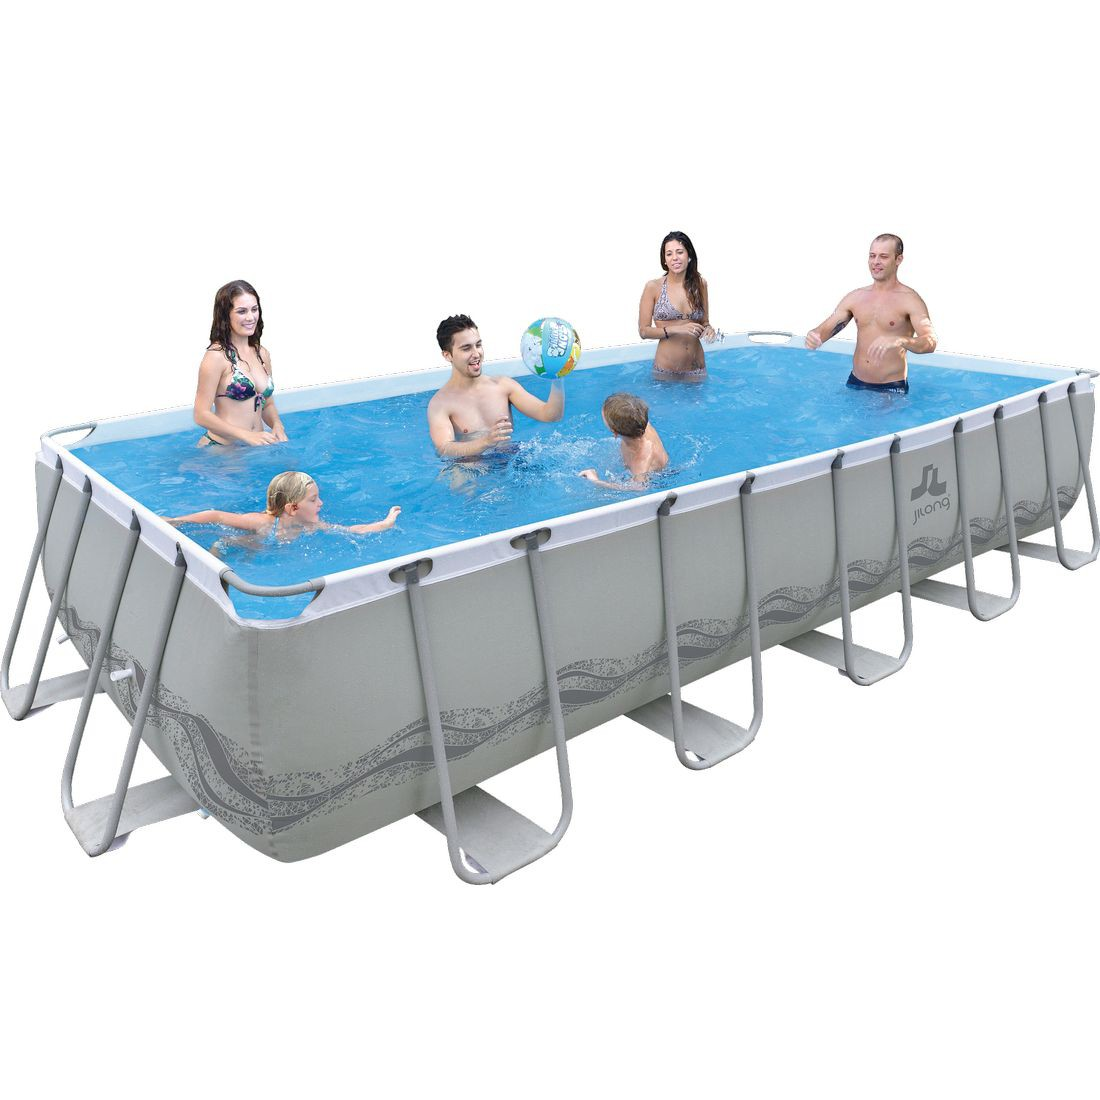 Piscina desmontable tubular gris for Piscinas desmontables rectangulares precios